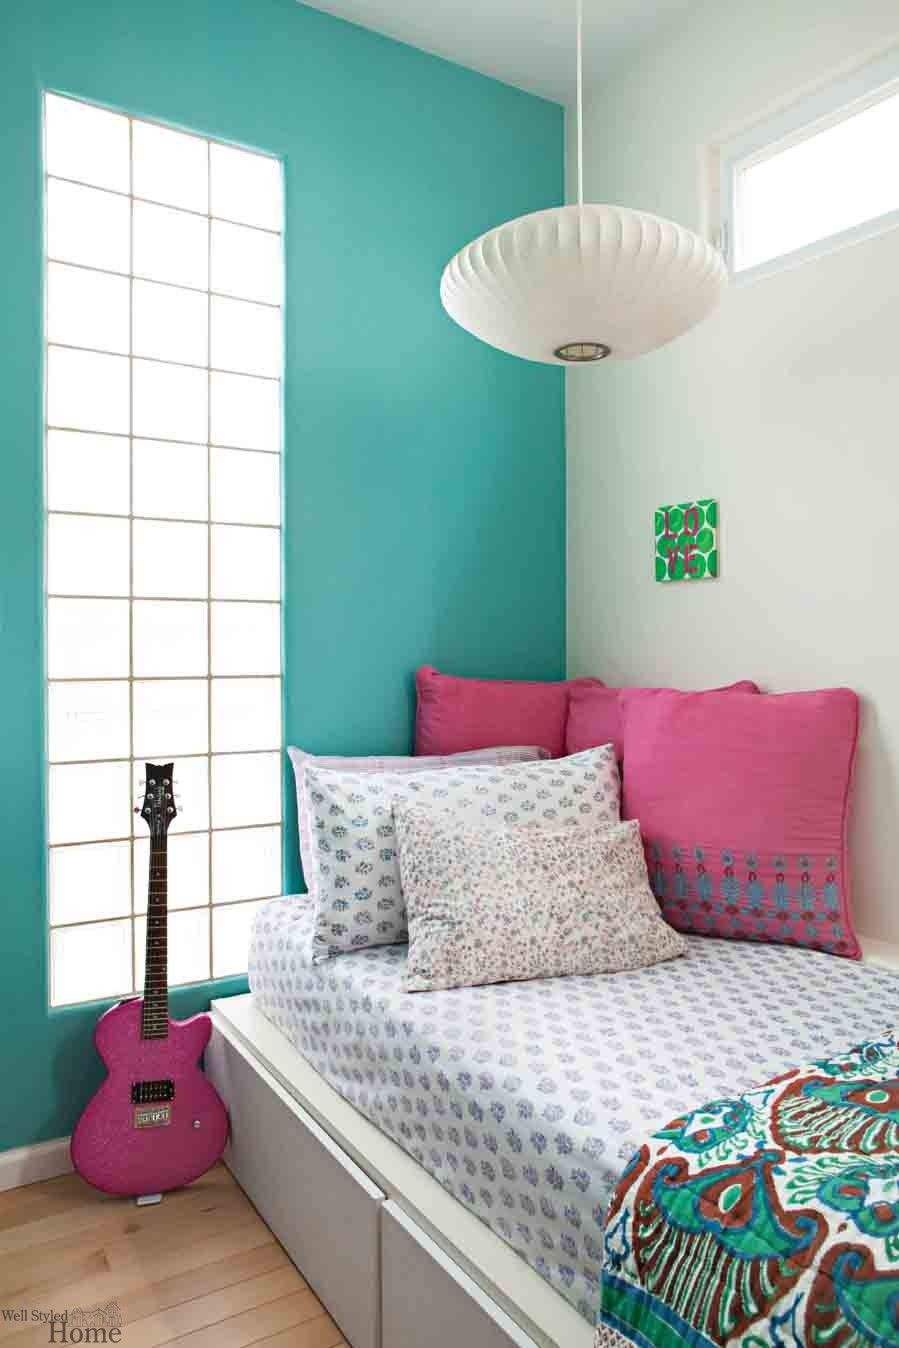 Girly tips for a teen girls bedroom decor ideas stuff Bedroom ideas for teens